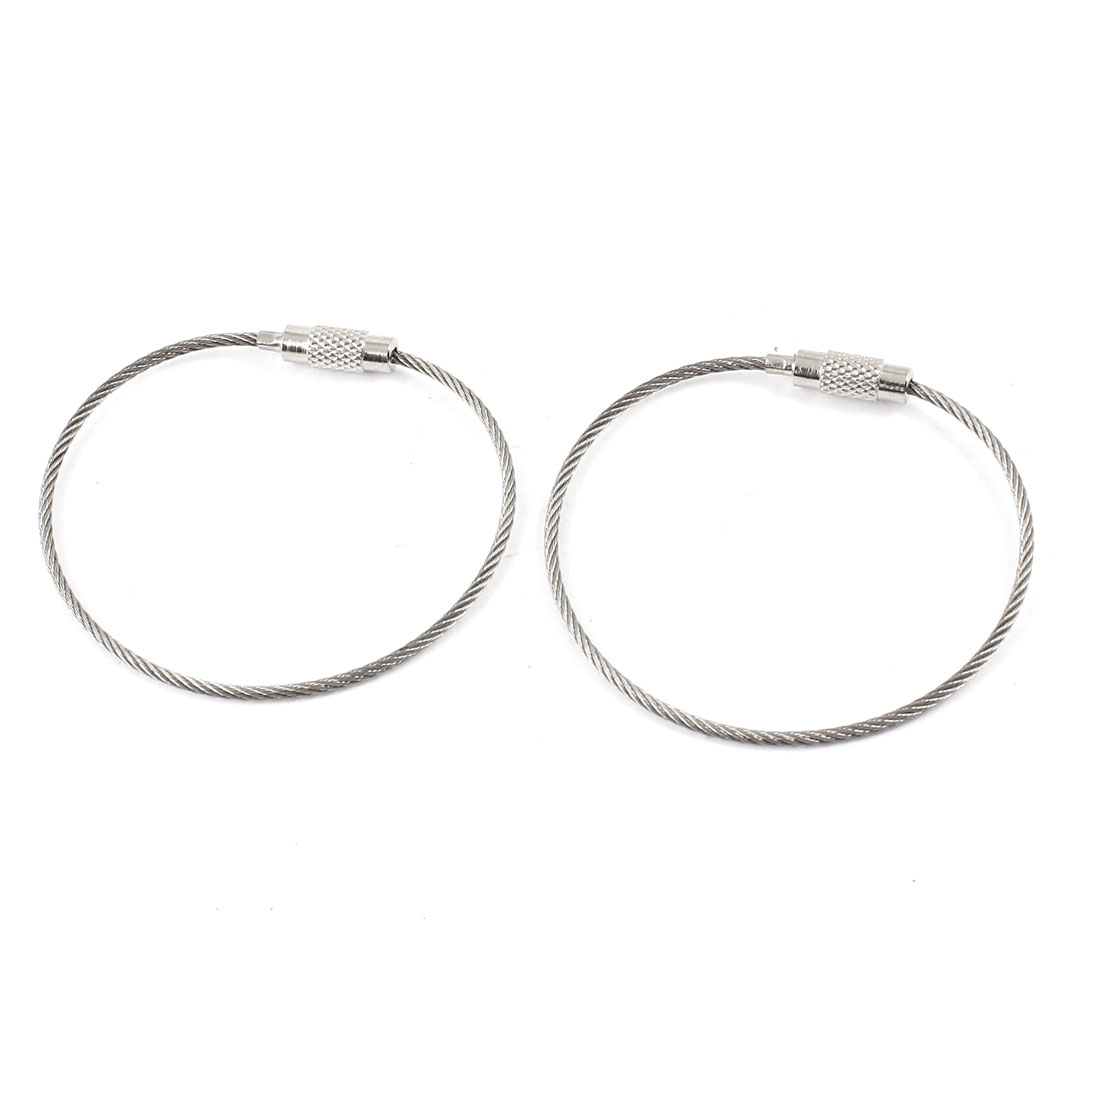 "Outdoor Key Holder 1.5mm Dia Stainless Steel Wire Ring Cable 5.9"" Long 2Pcs"